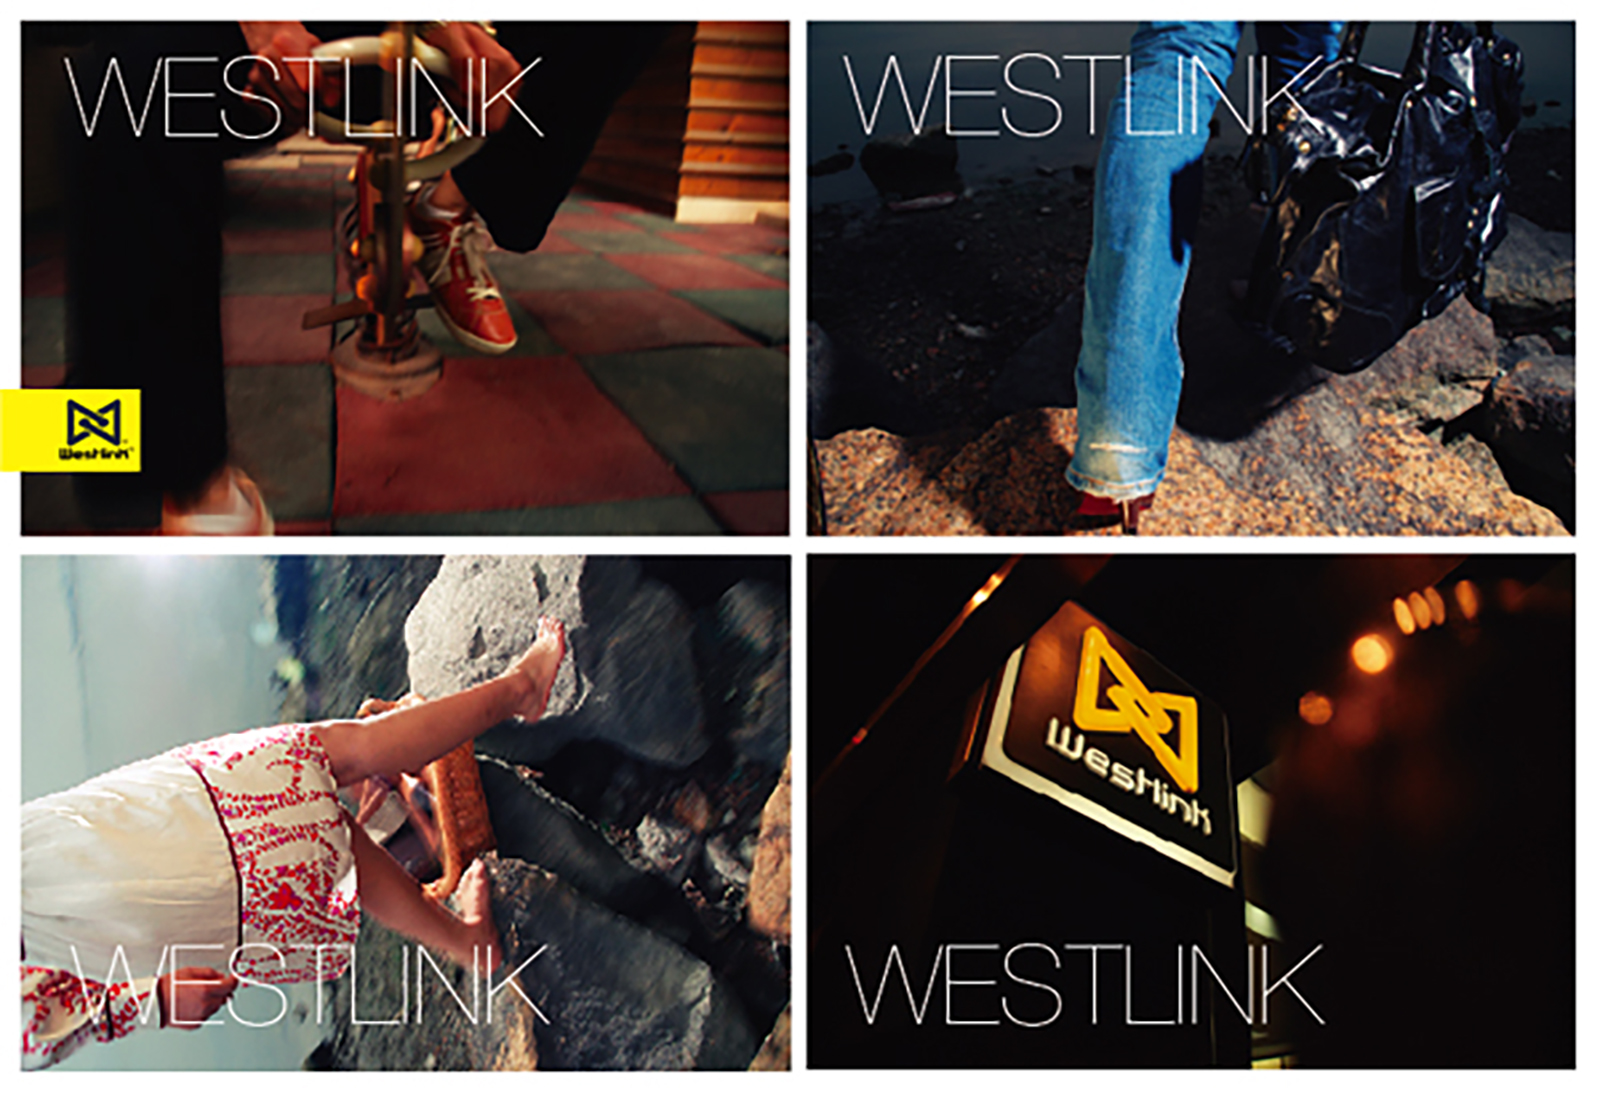 西域 | Westlink catalog & photography 3